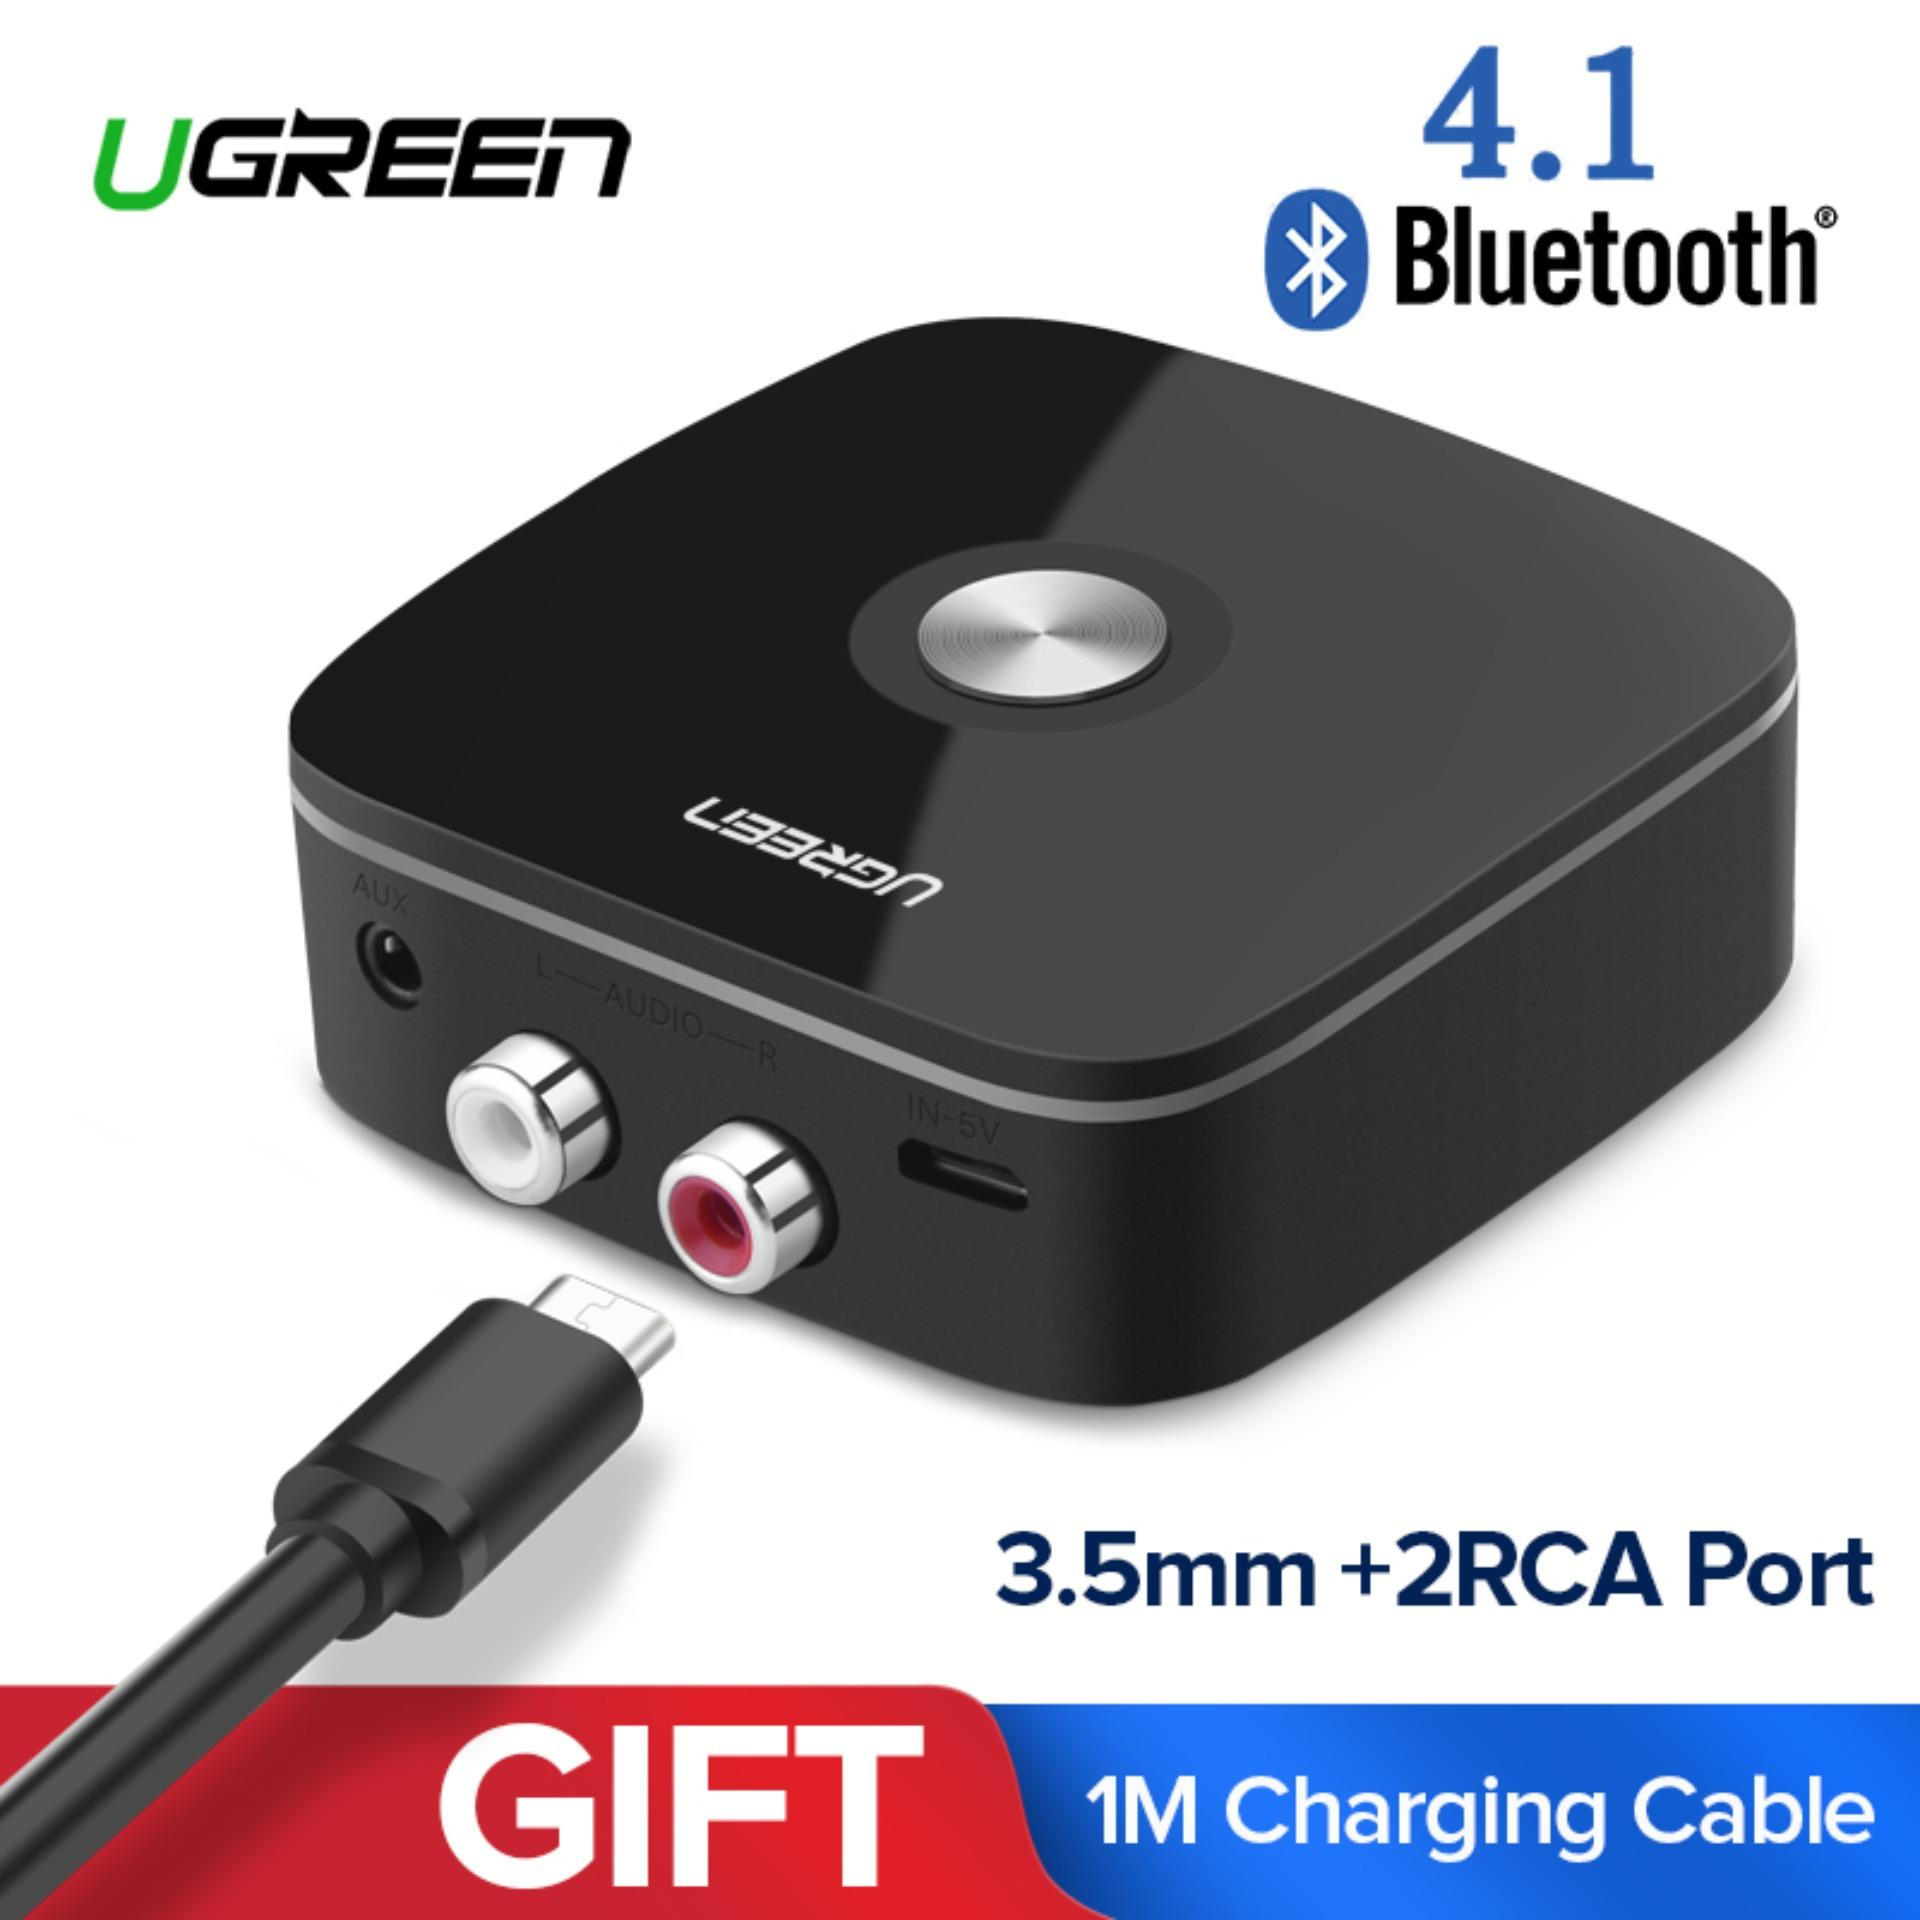 UGREEN Mini Bluetooh 4.1 Audio Receiver Wireless Music Adapter with RCA Connection for Car Home Speaker